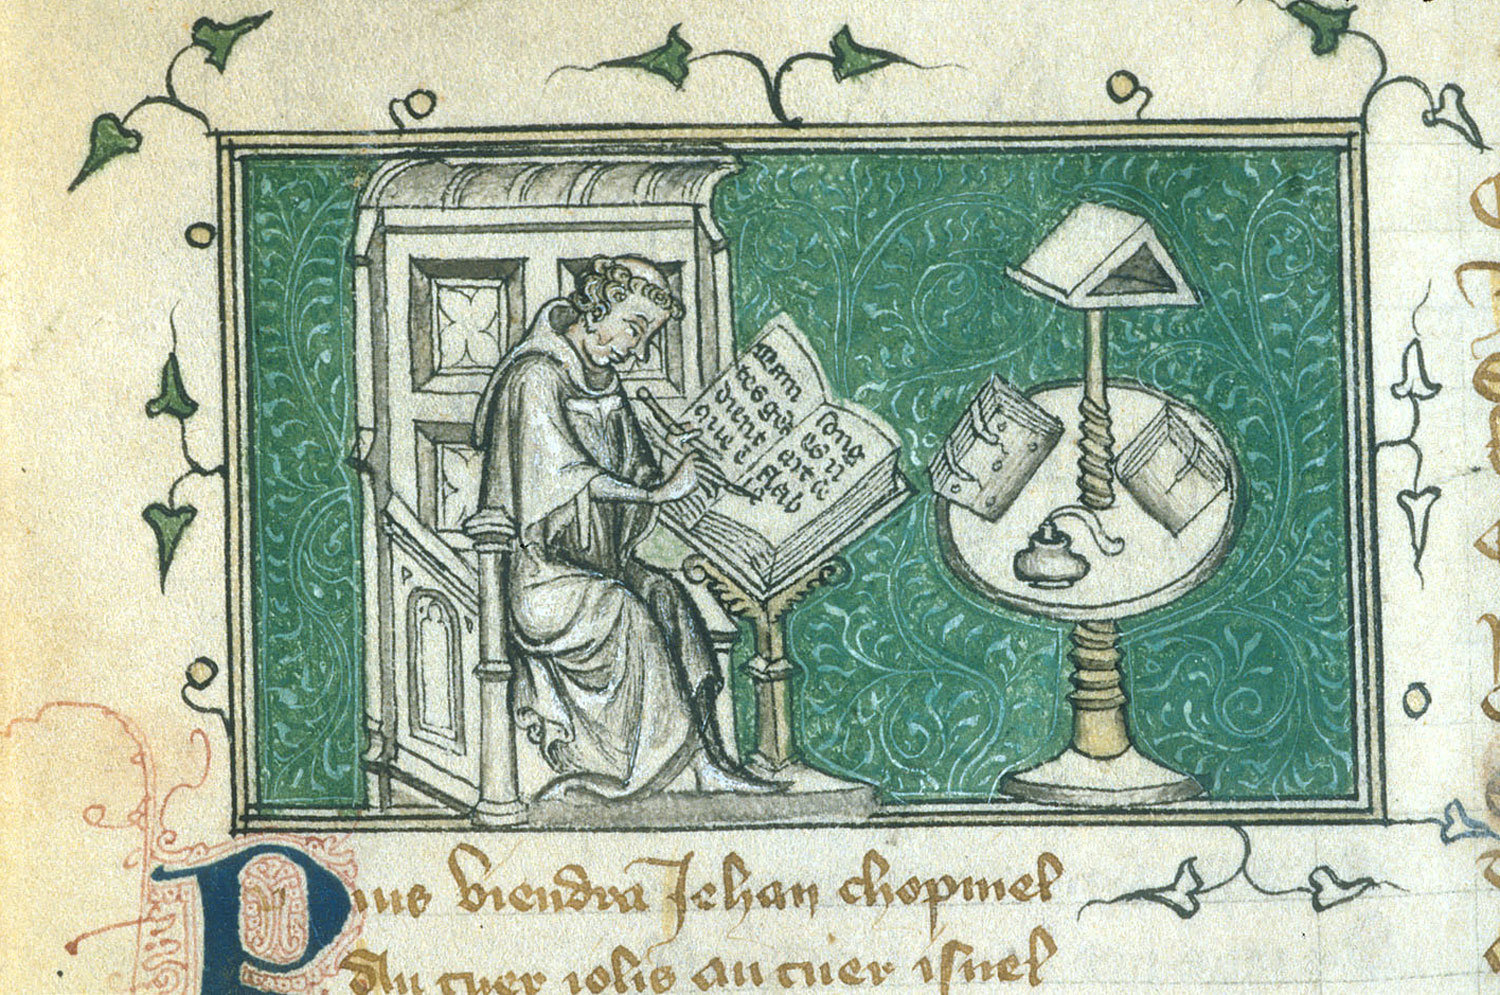 Jean de Meun writing in his study from BL YT 21, f. 69v, c. 1380, Guillaume de Lorris and Jean de Meun, British Library, Public Domain Mark